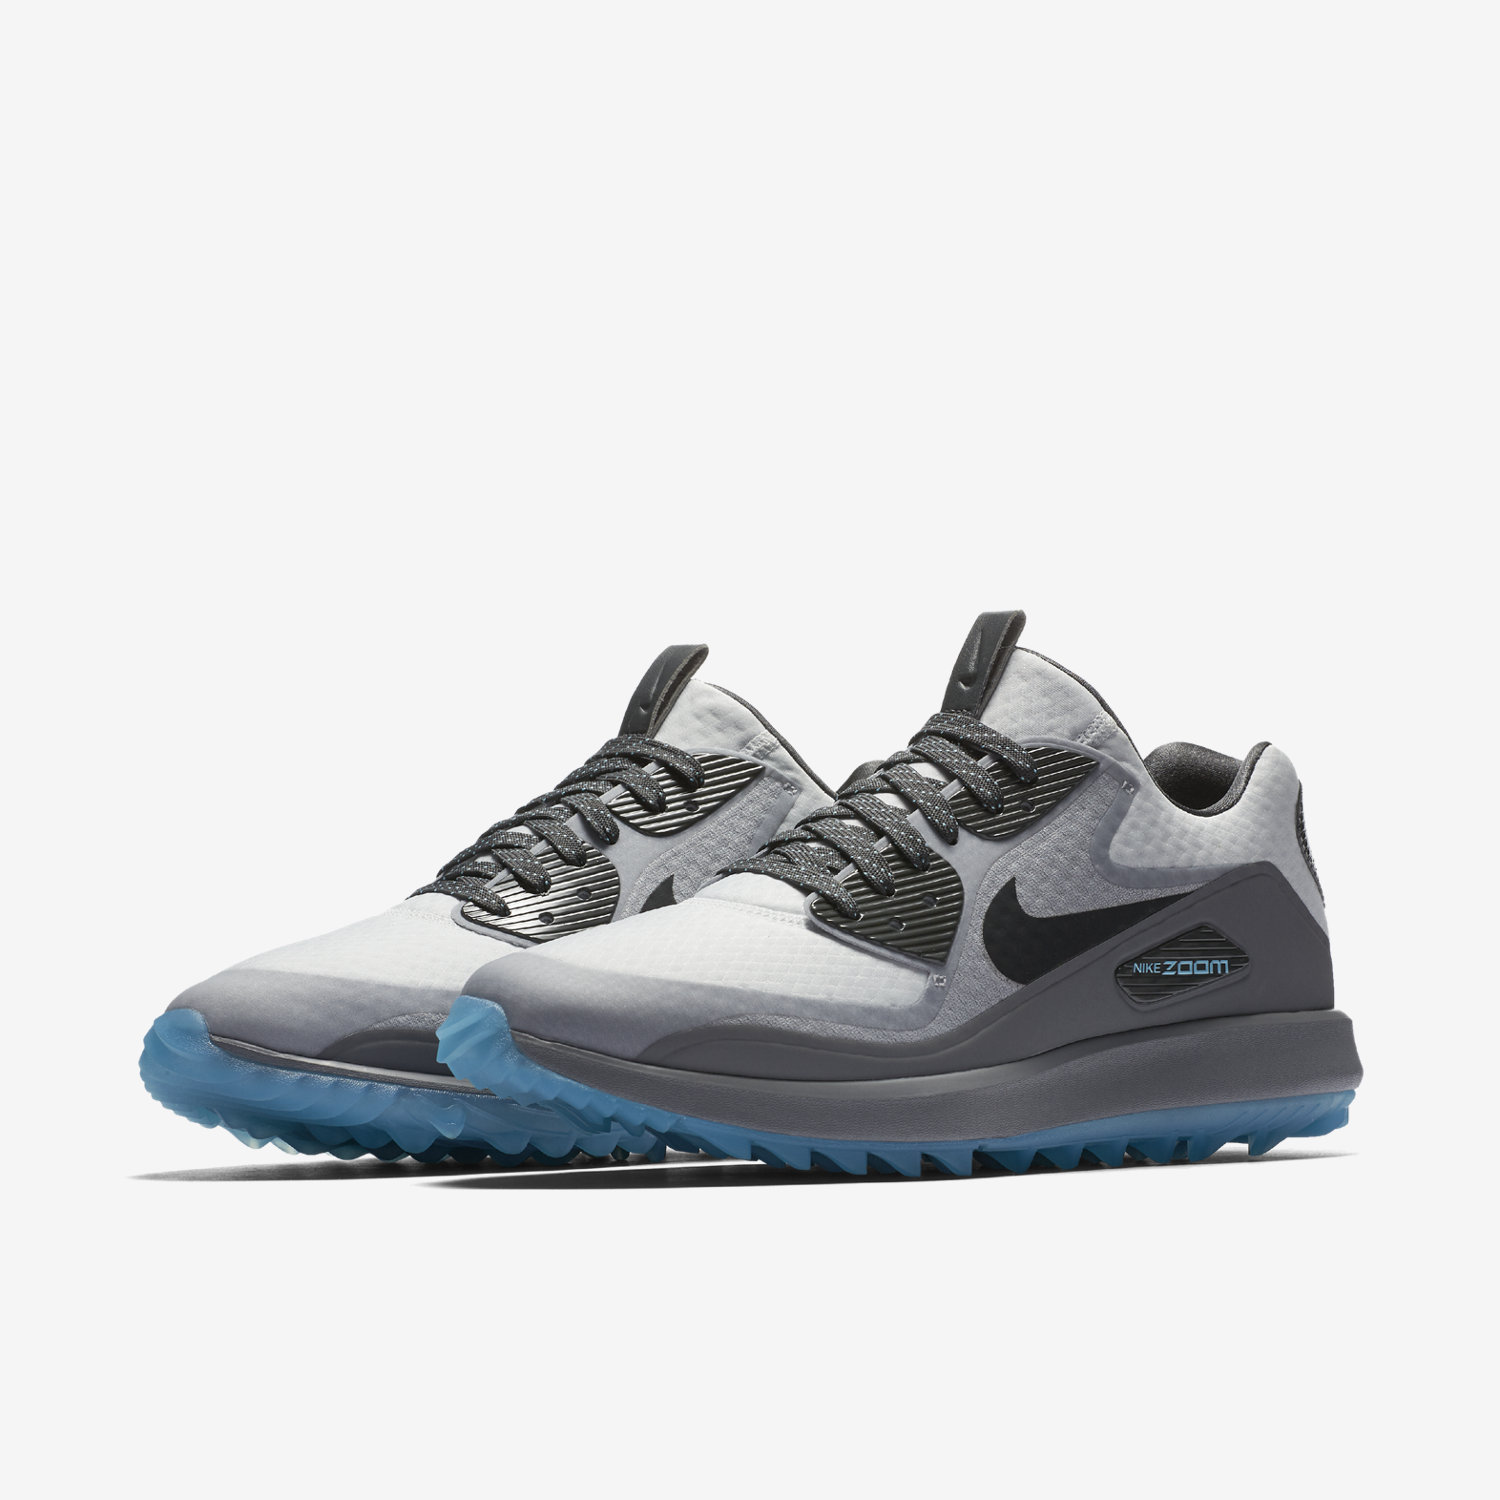 Nike Golf Air Zoom 90 IT at Zappos